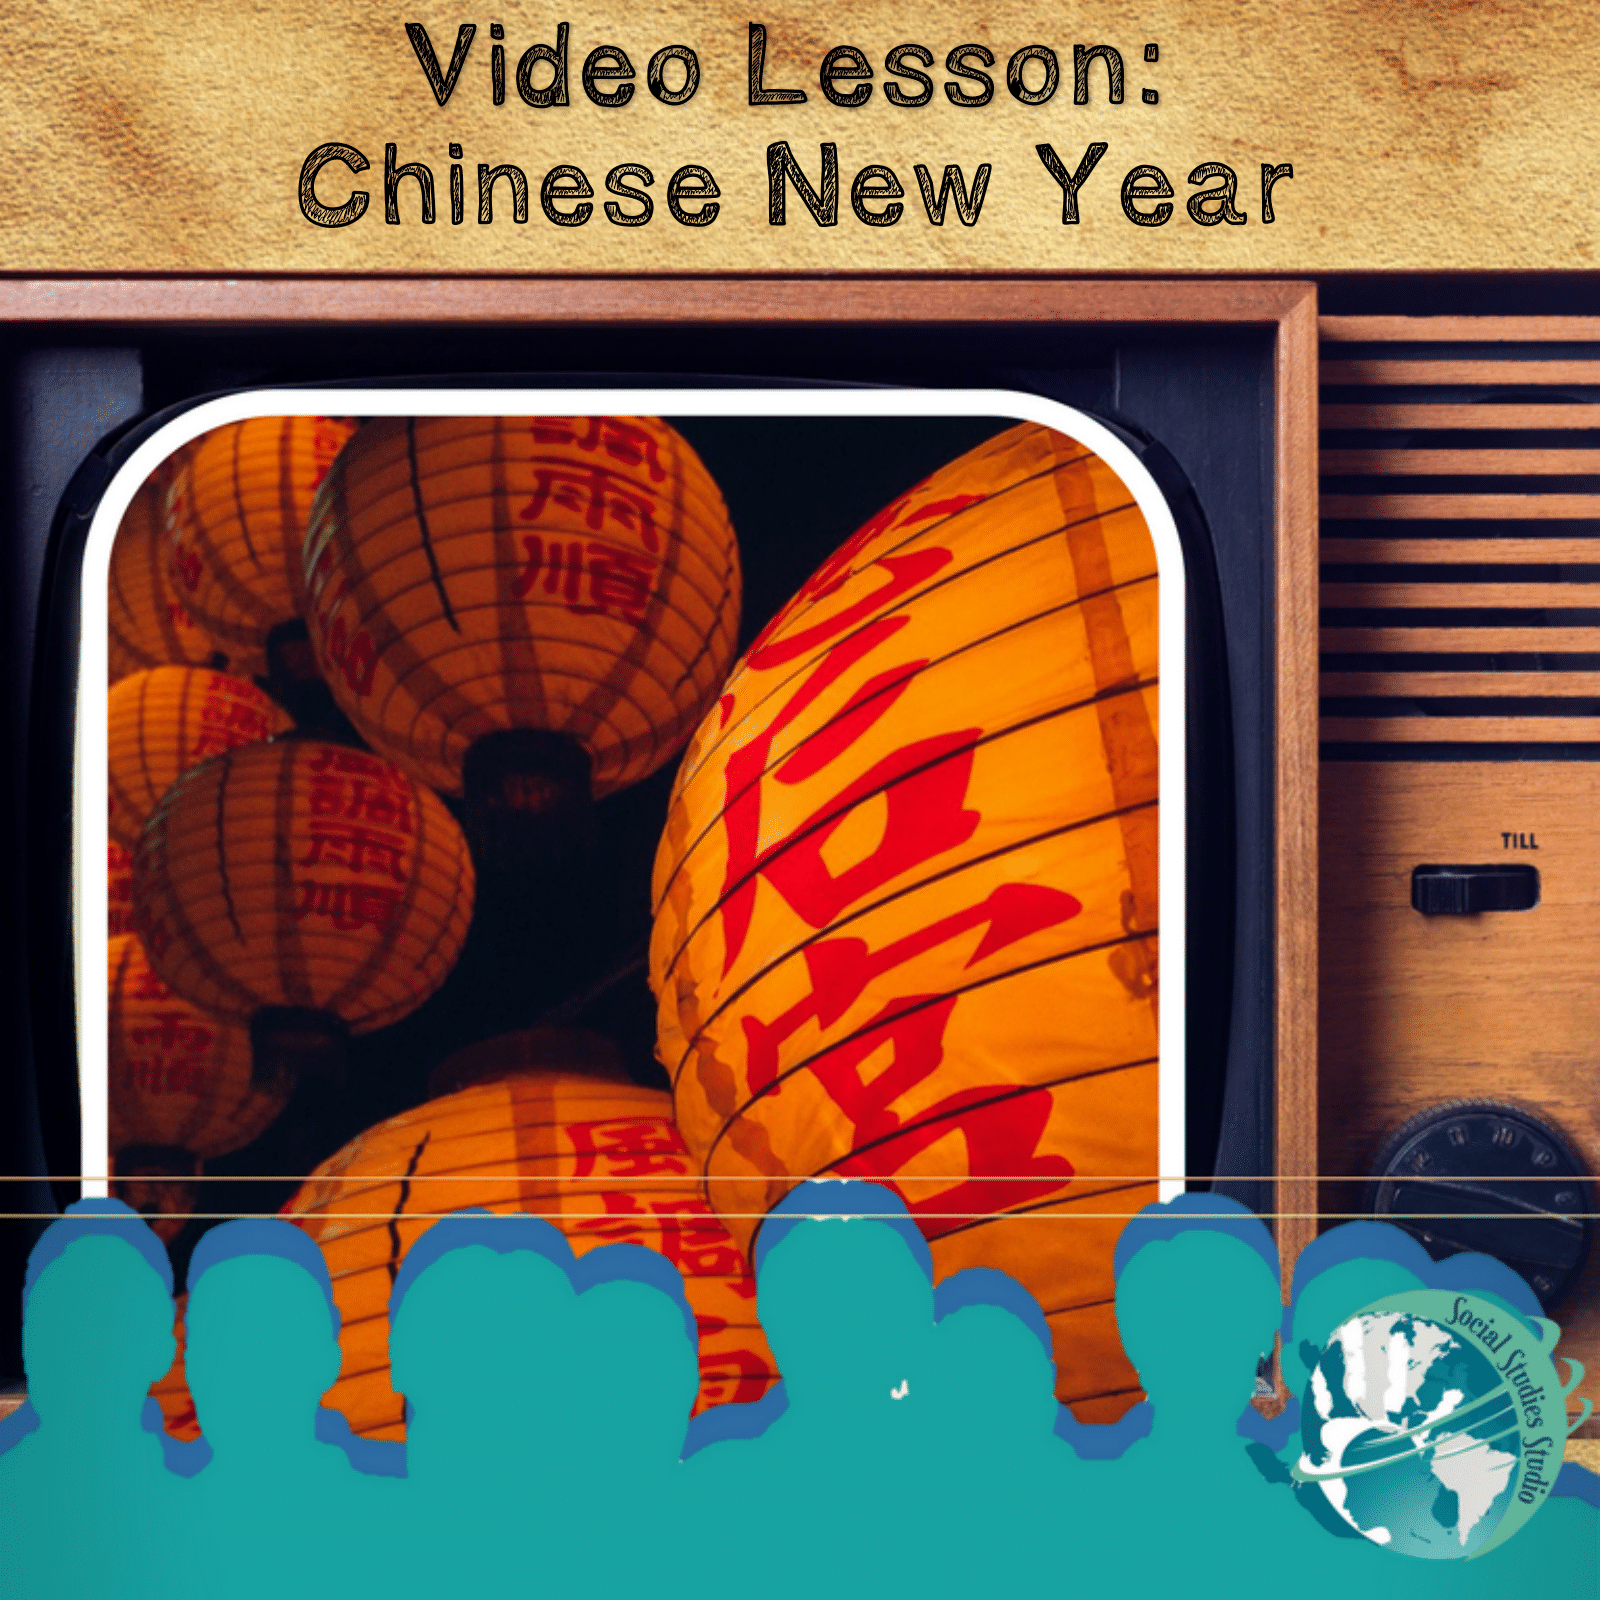 Video Lesson Chinese New Year